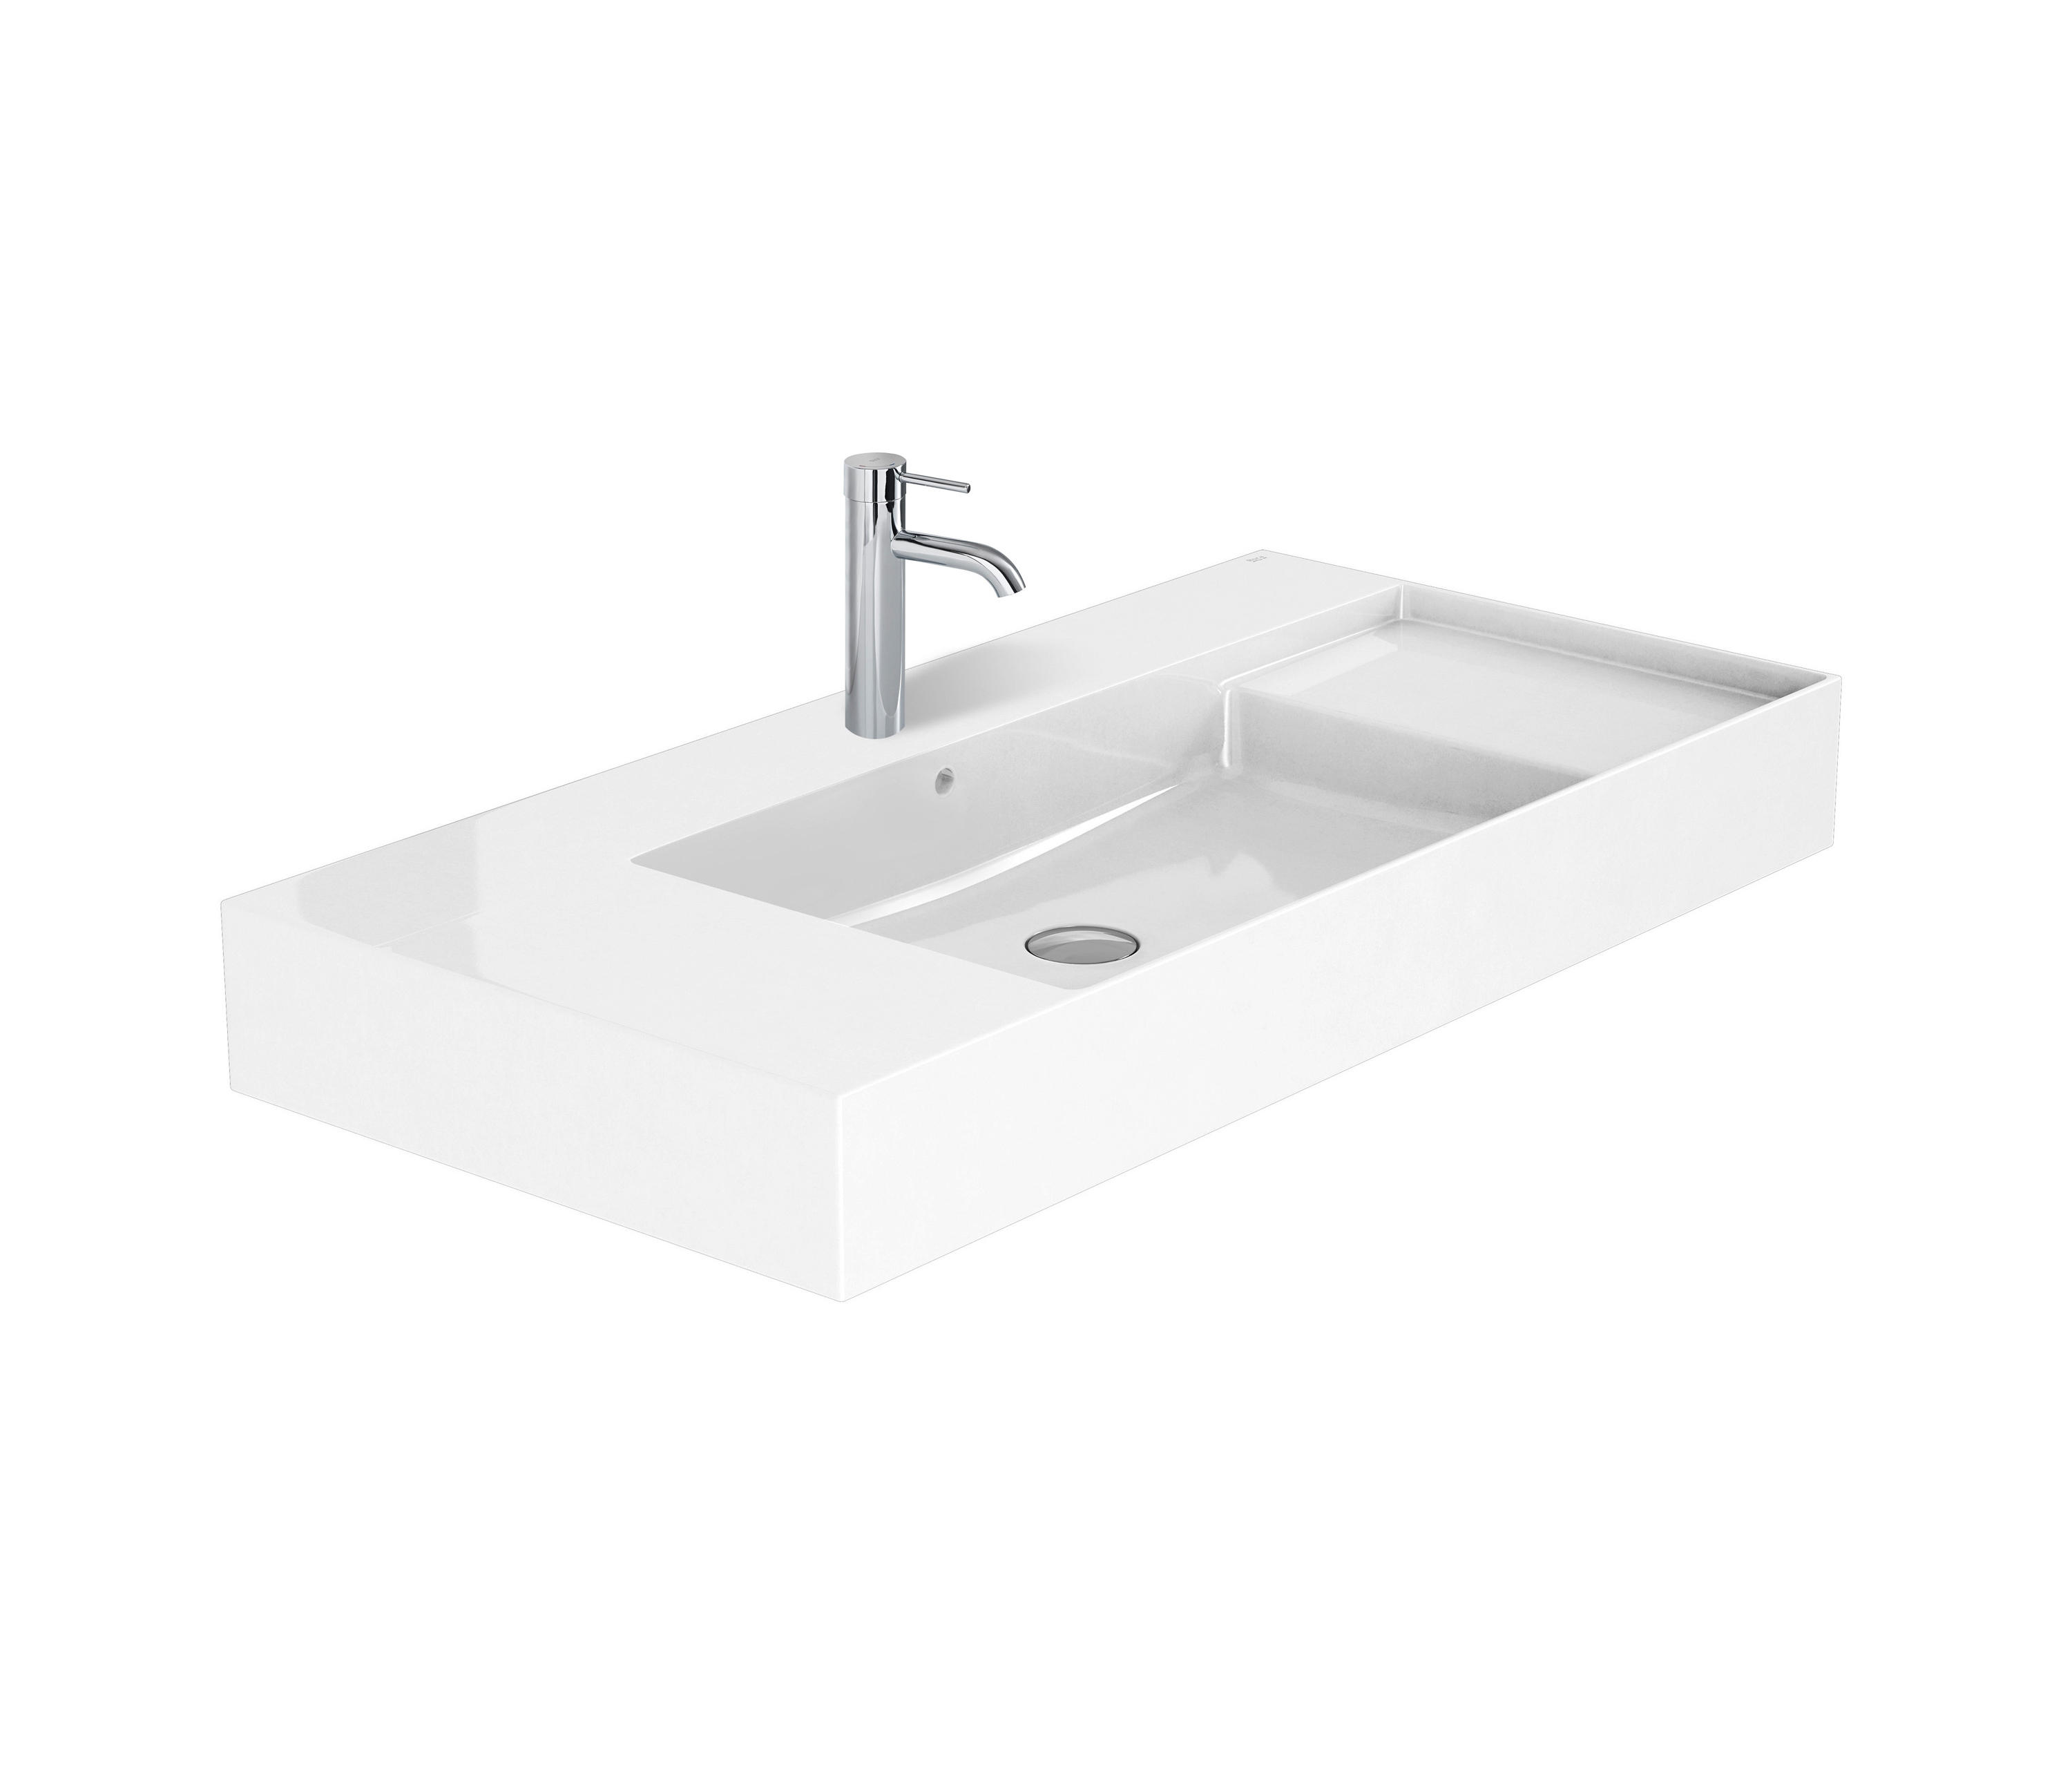 inspira basin by roca wash basins - Roca Wash Basin